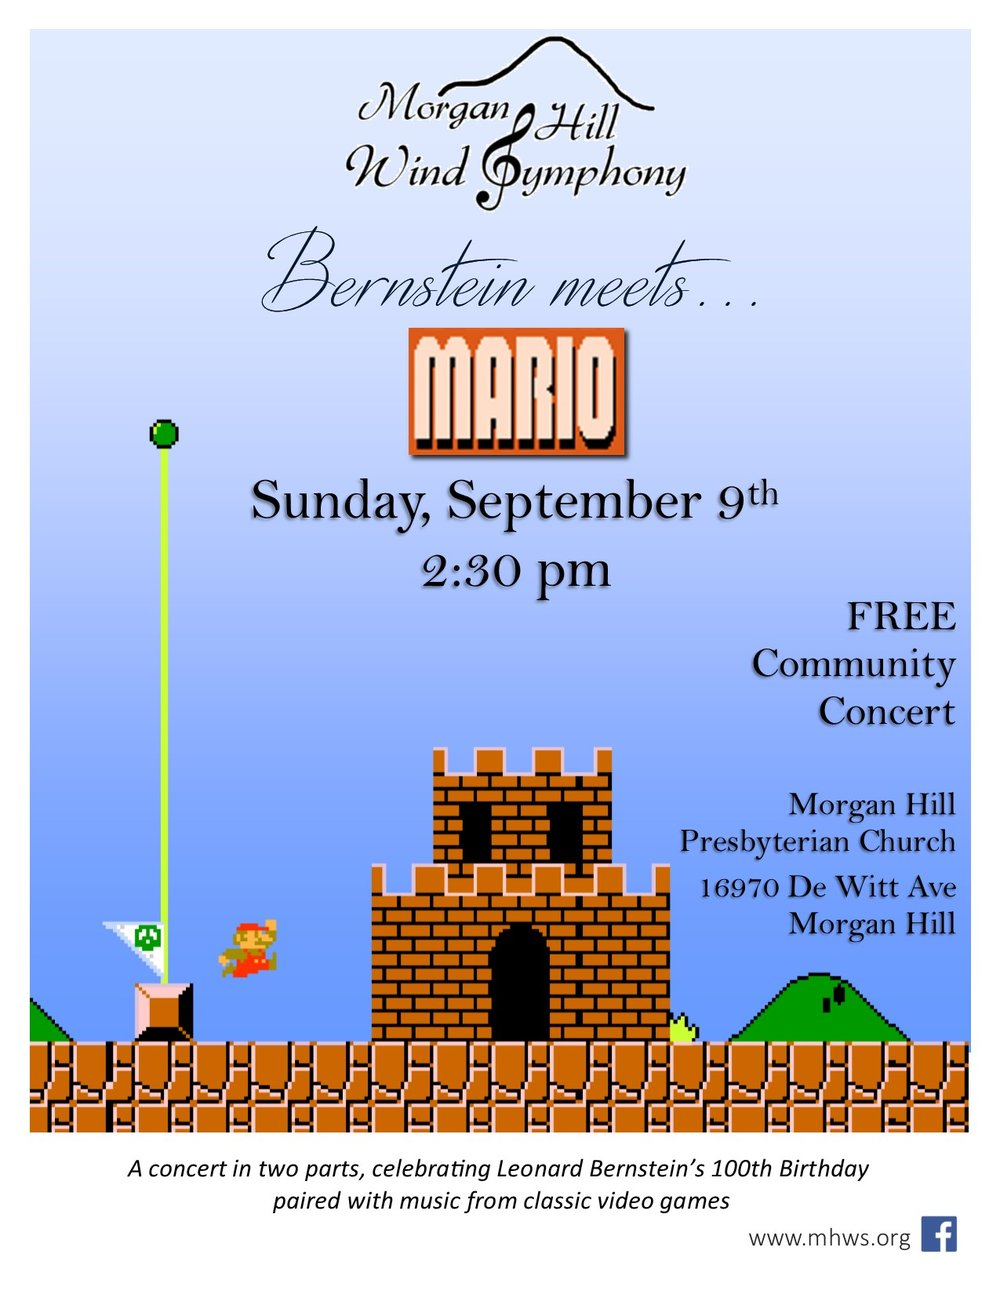 Bernstein meets Mario - Sunday, September 9th, 2018 at 2:30 PMMorgan Hill Presbyterian Church16970 De Witt Ave, Morgan Hill